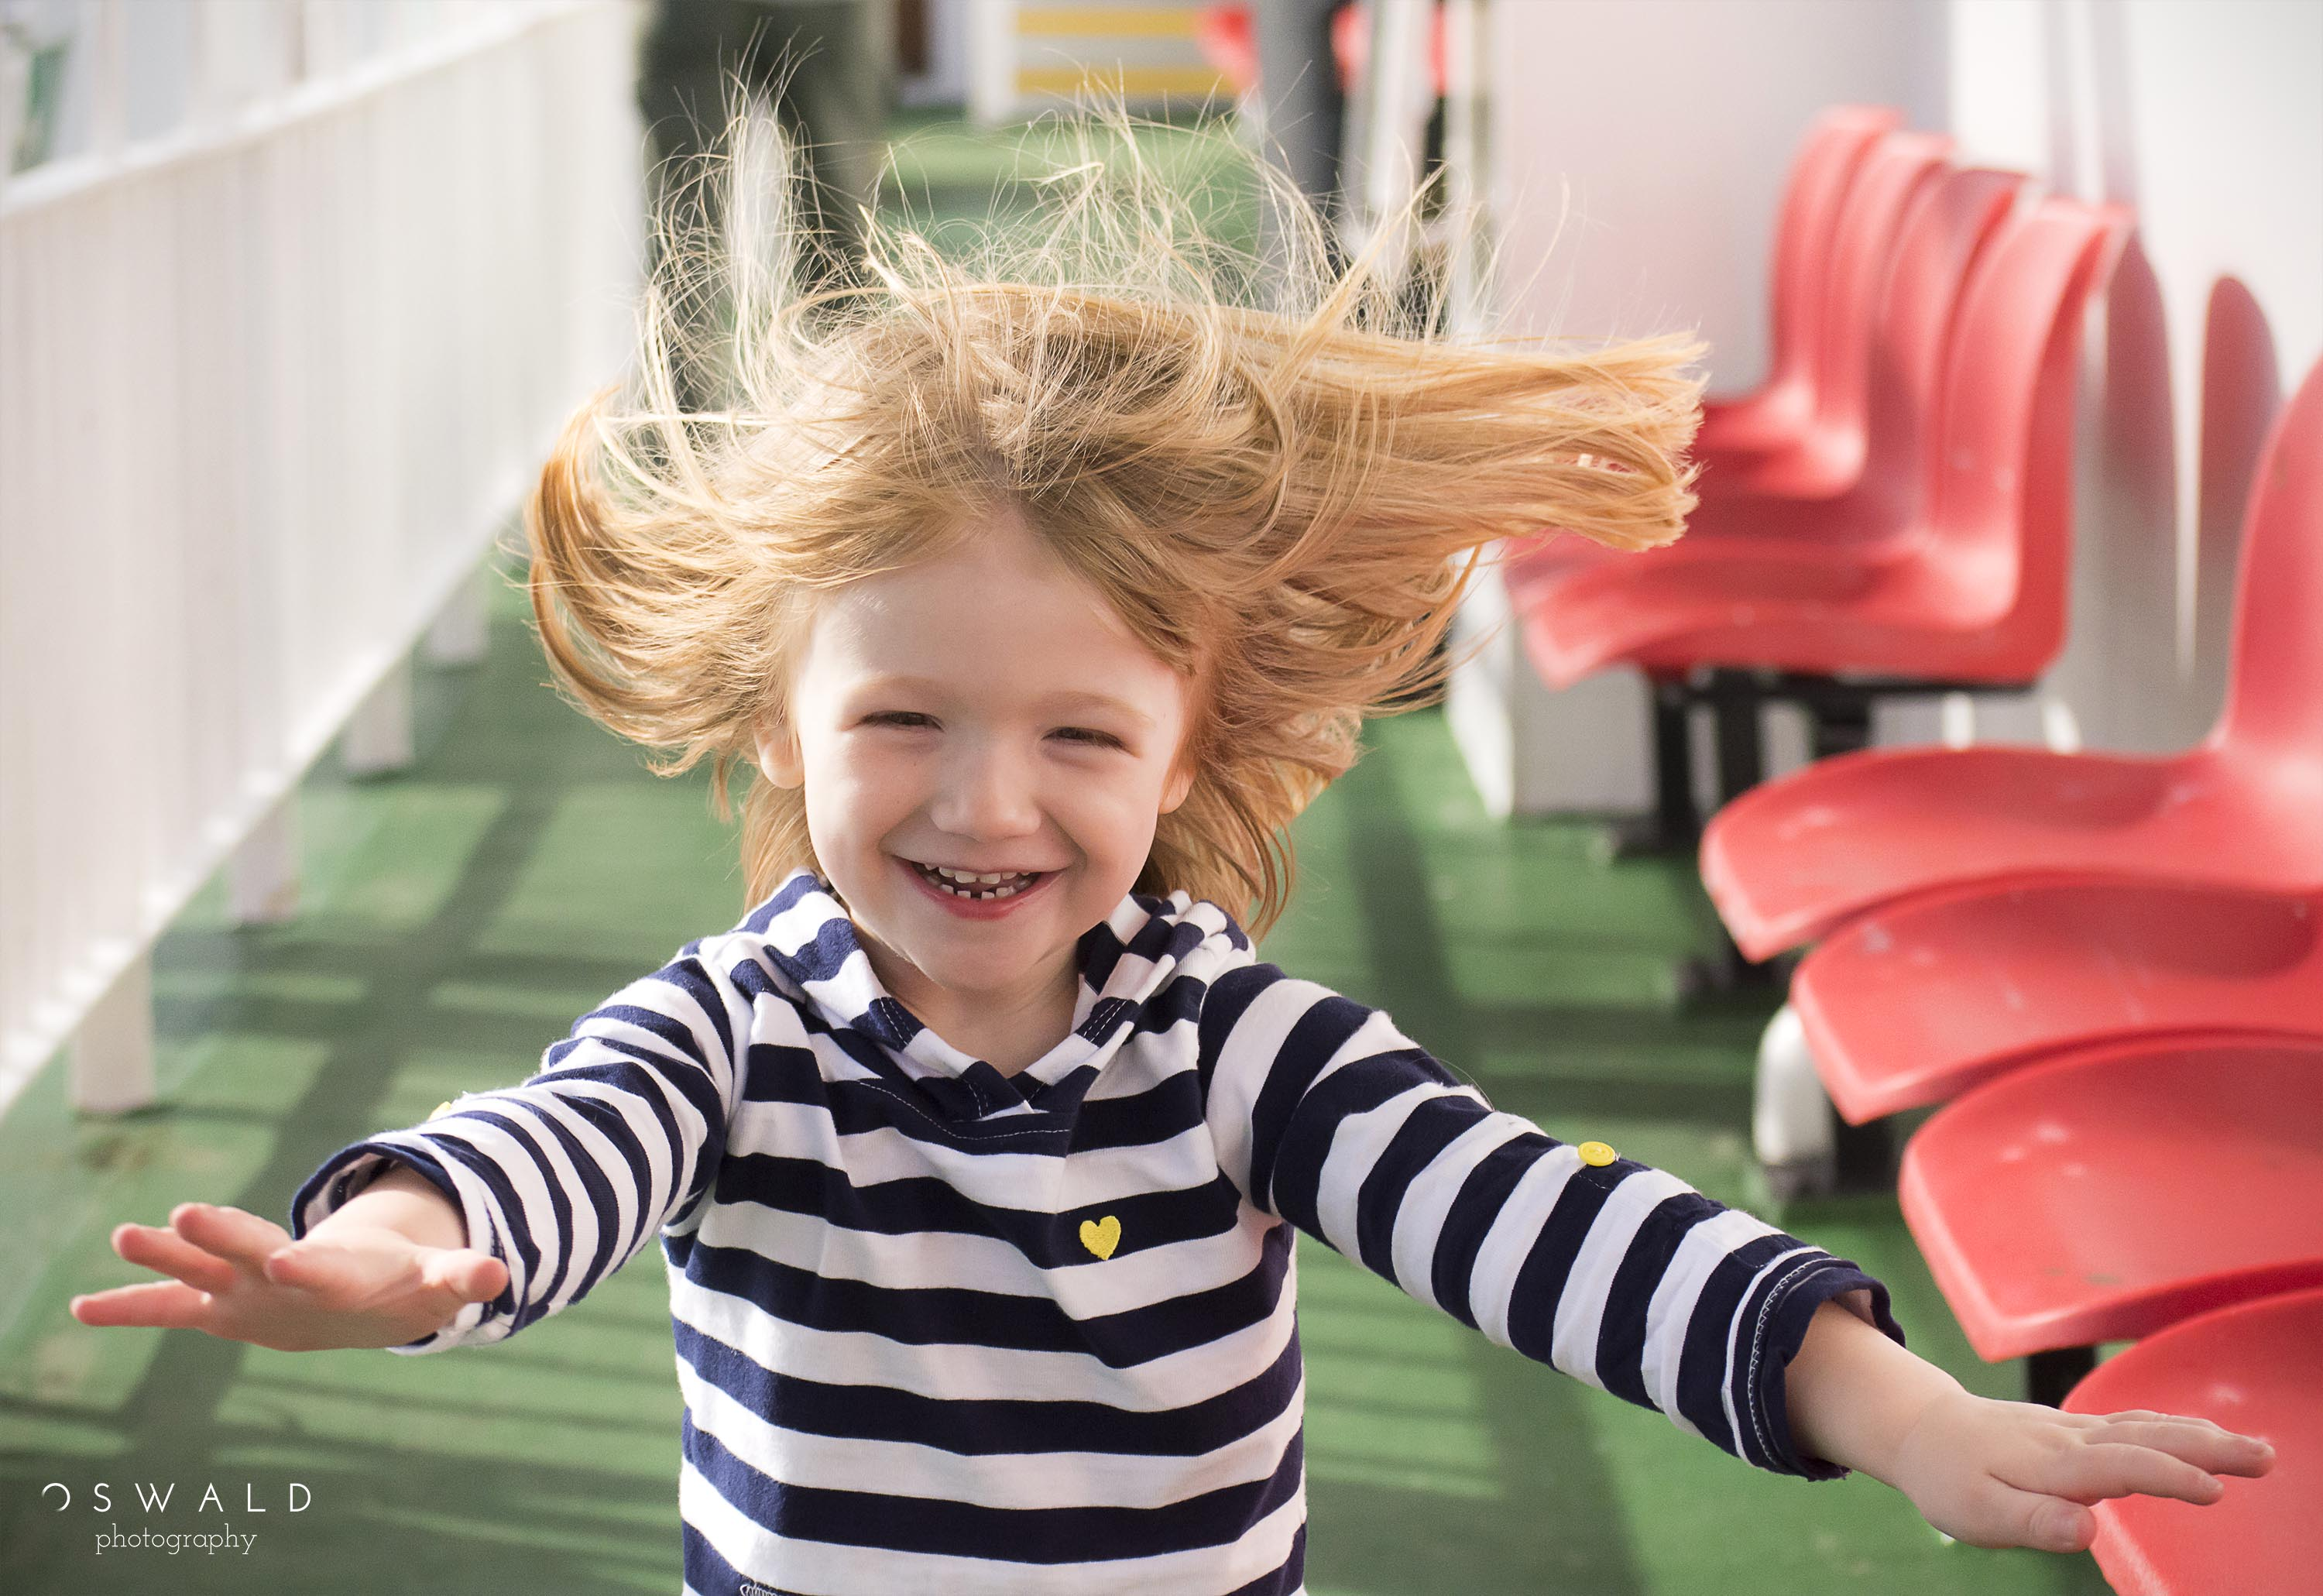 A little blond girl runs smiling down the deck of a ferry boat.